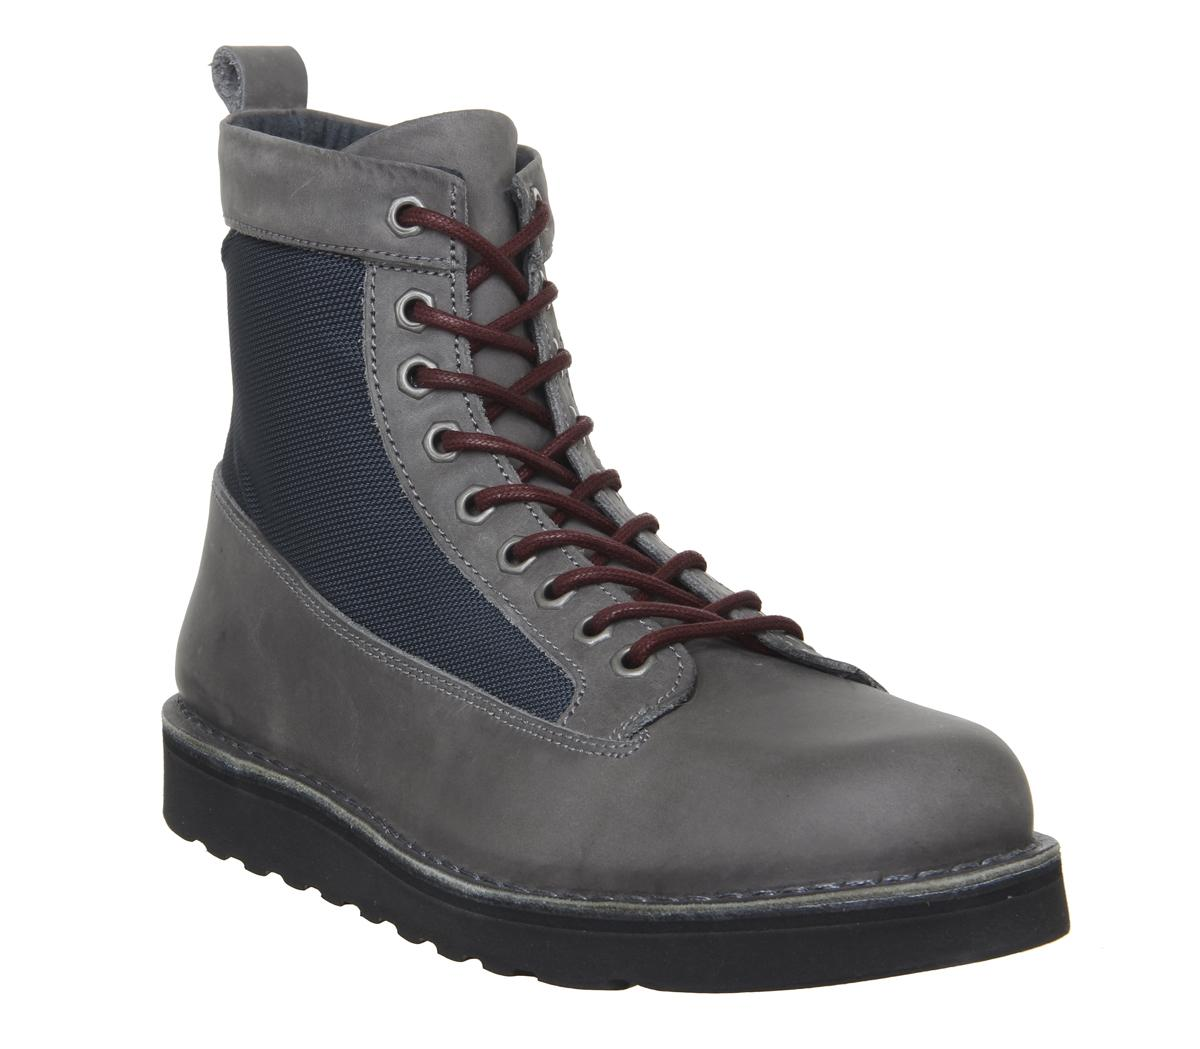 Incline Hiker Boots